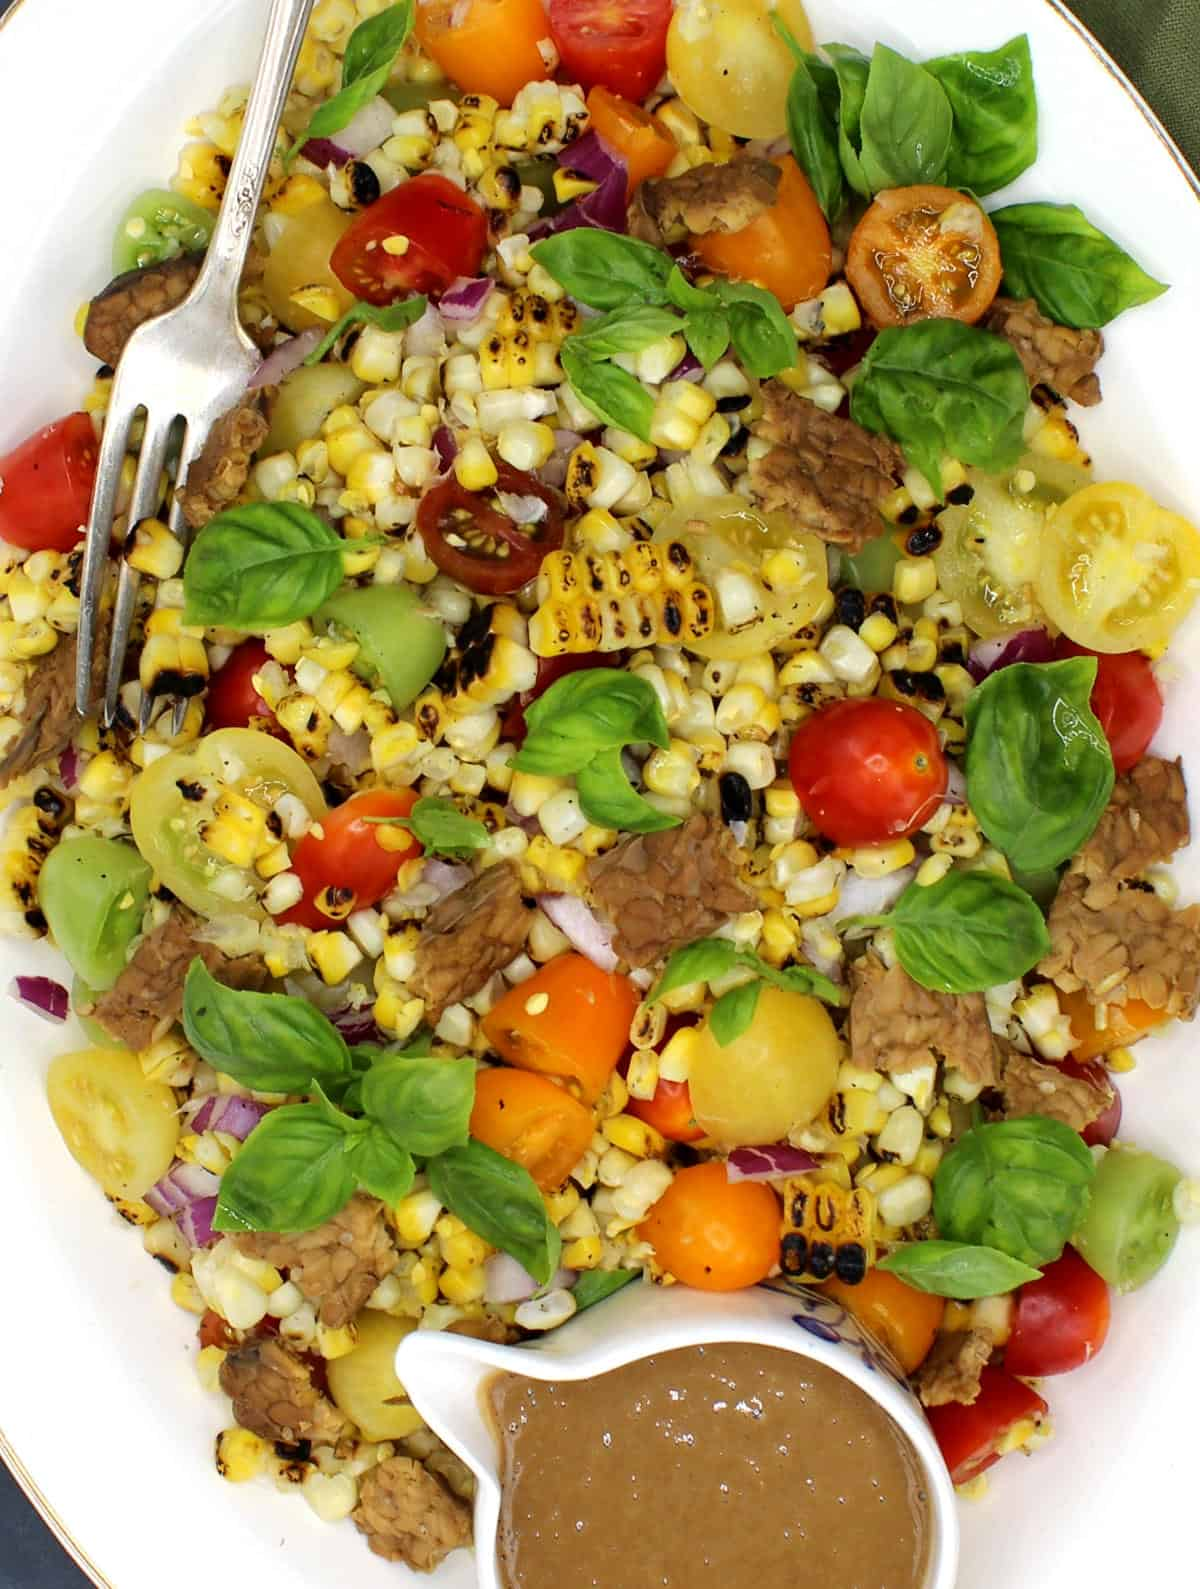 Tight closeup of a colorful grilled corn salad with tempeh bacon, cherry tomatoes, basil and creamy sesame dressing.